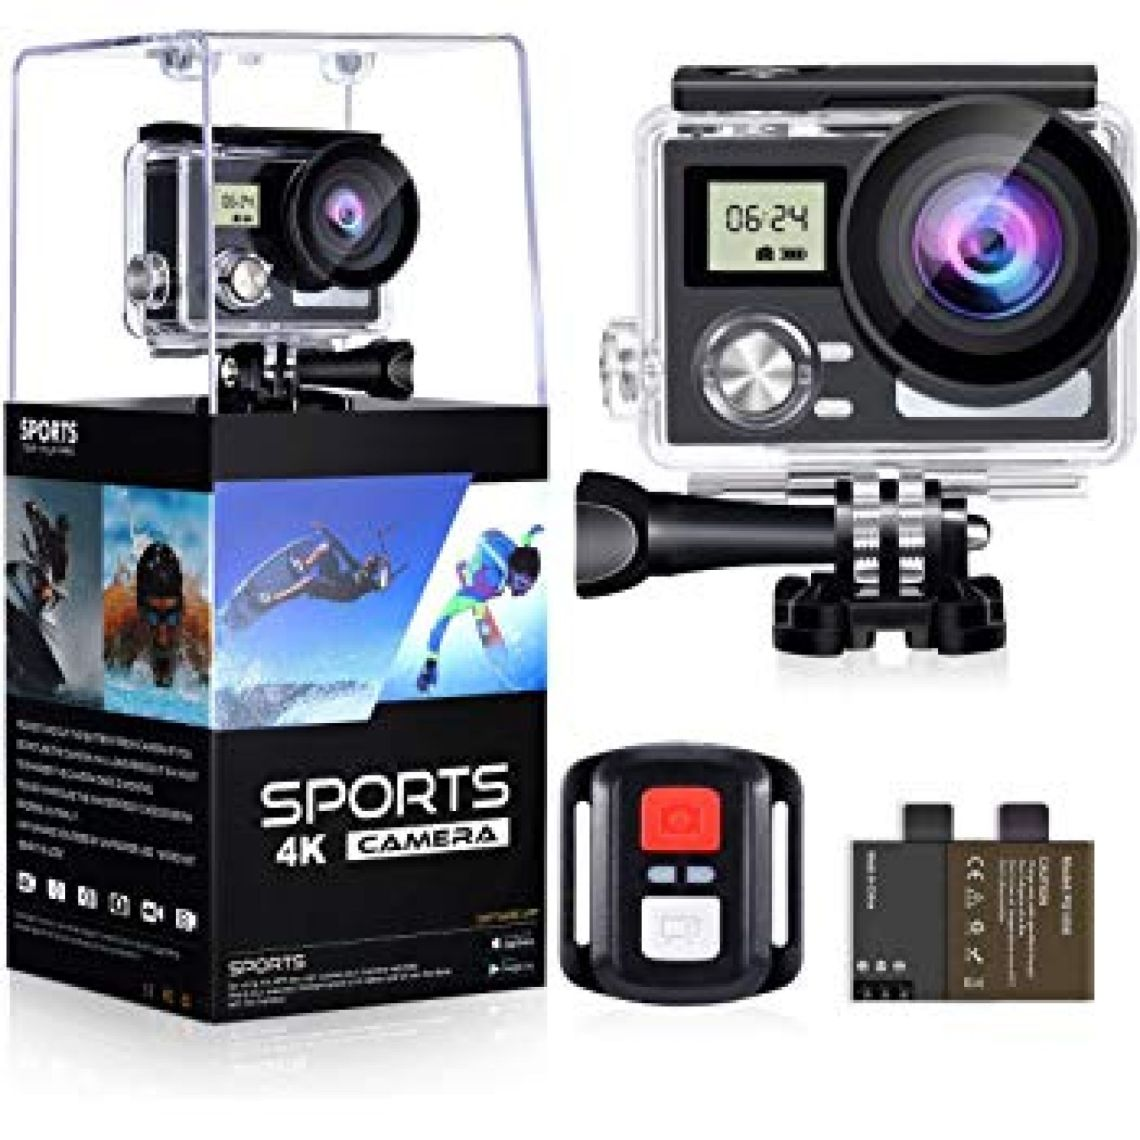 "Amazon.com : WiFi Action Camera 4K 24MP Waterproof Ultra HD Remote EIS Sports Camera 100Ft Underwater OGL 2"" LCD 170° Wide Angle 2 Rechargeable Batteries Mounting Accessories Kits (Upgraded 24MP 128GB) : Camera & Photo"